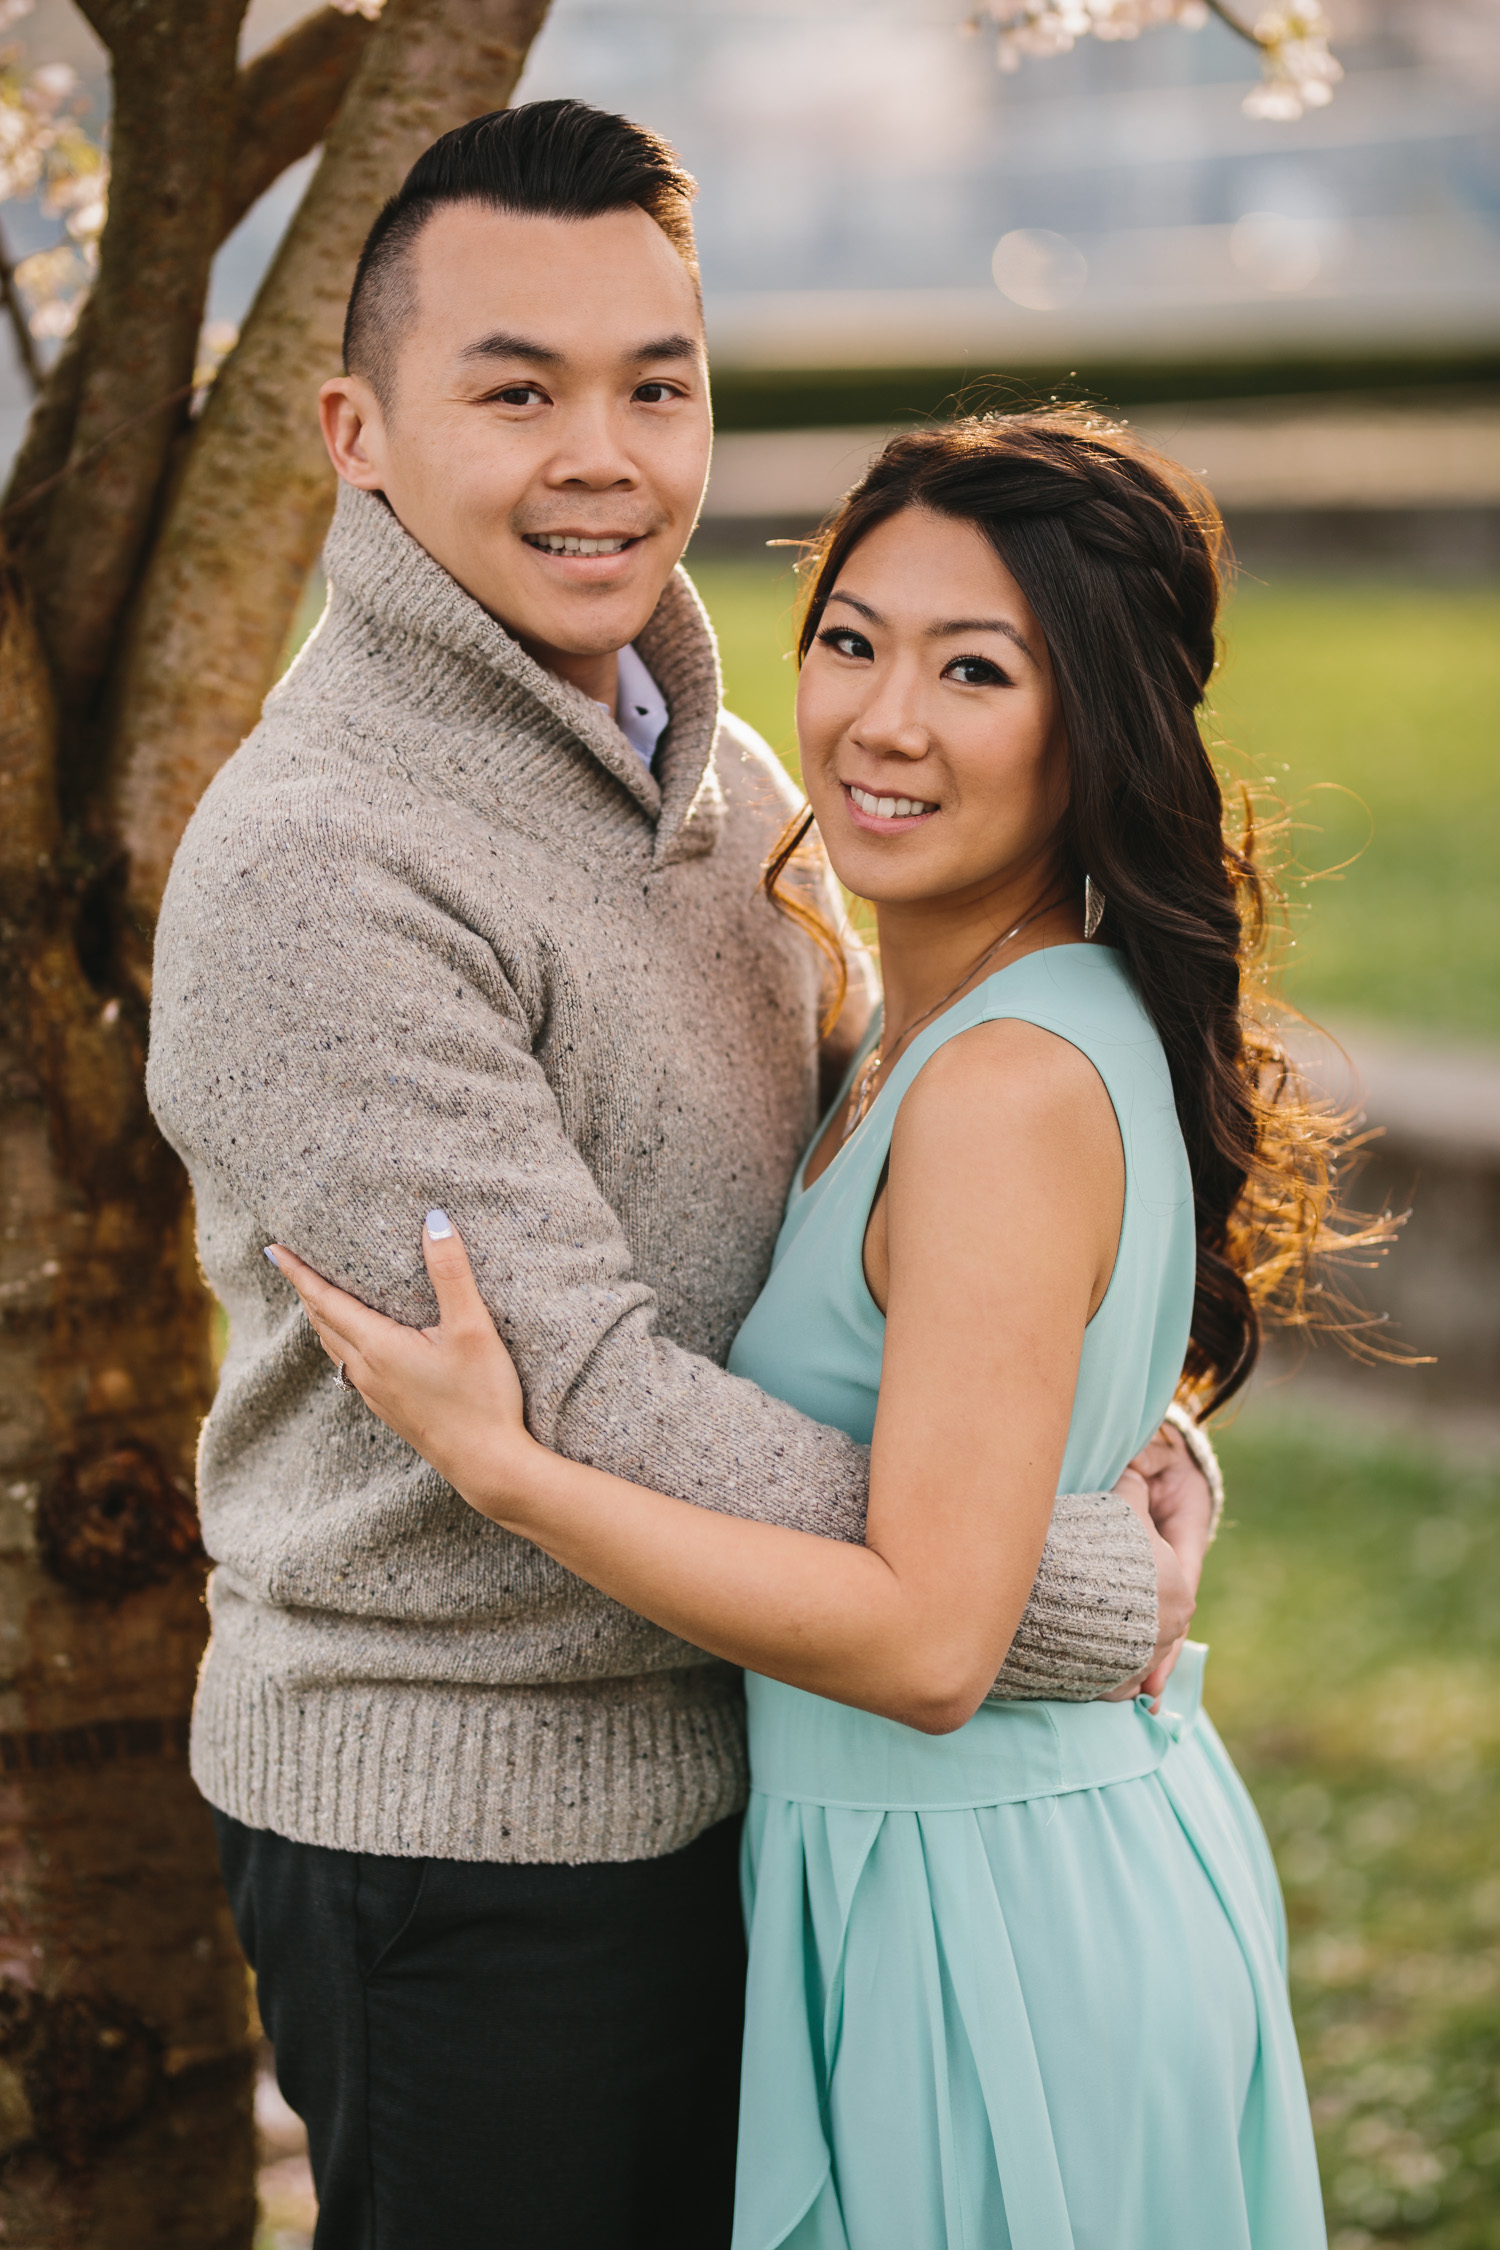 vancouver cherry blossom engagement photography in yaletown david lam park